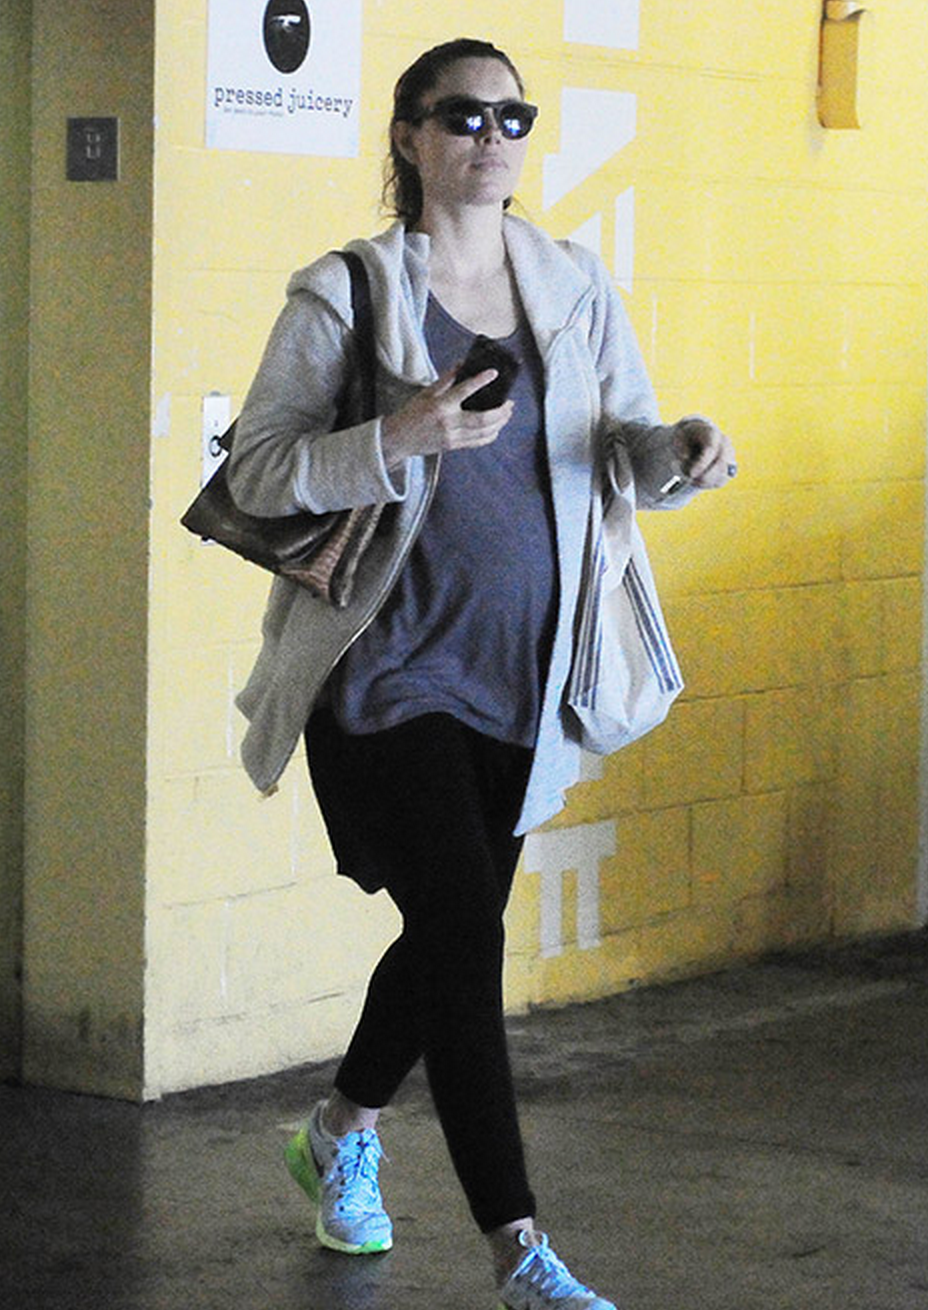 Jessica Biel's Baby Bump is Officially Here! - http://www.celebritybabyscoop.com/2015/01/08/jessica-biels-officially #JessicaBiel, #JustinTimberlake